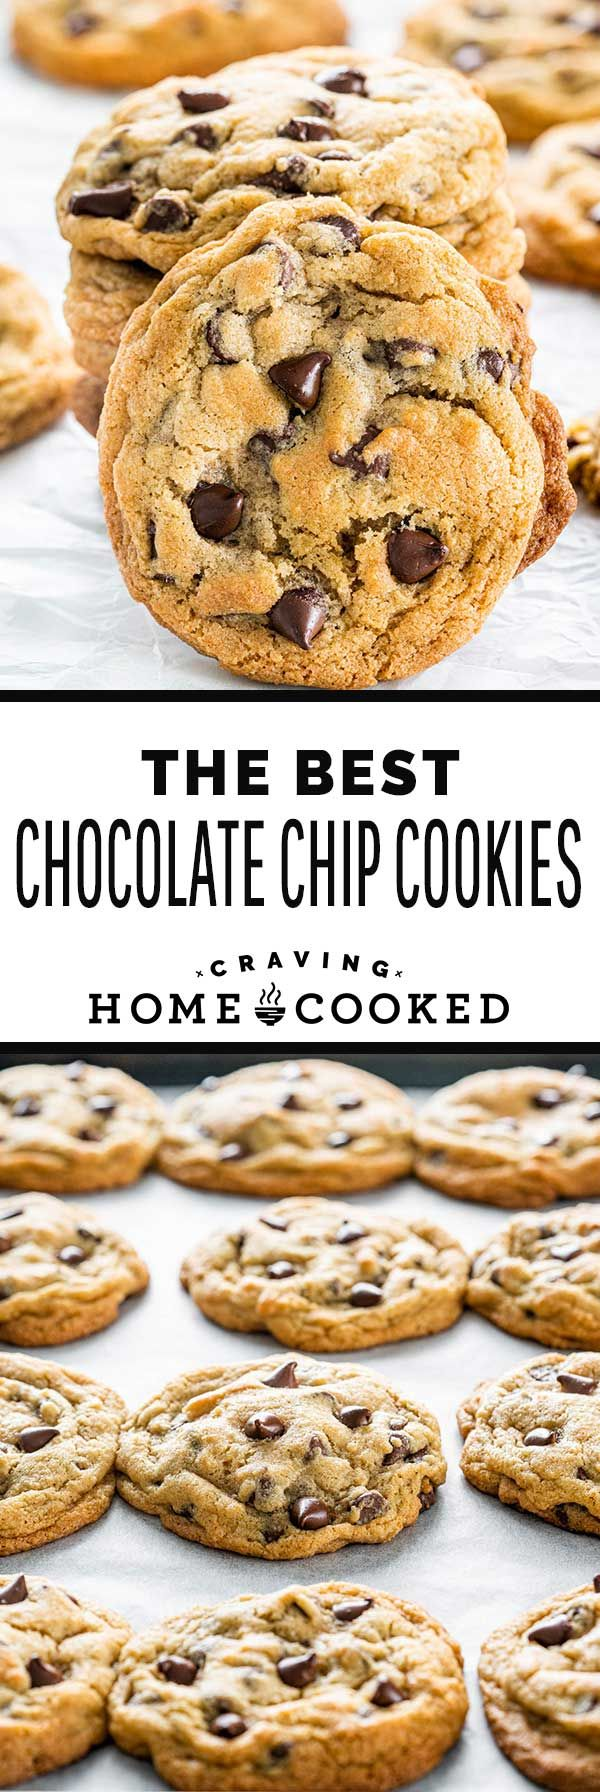 Chocolate Chip Cookies - Craving Home Cooked